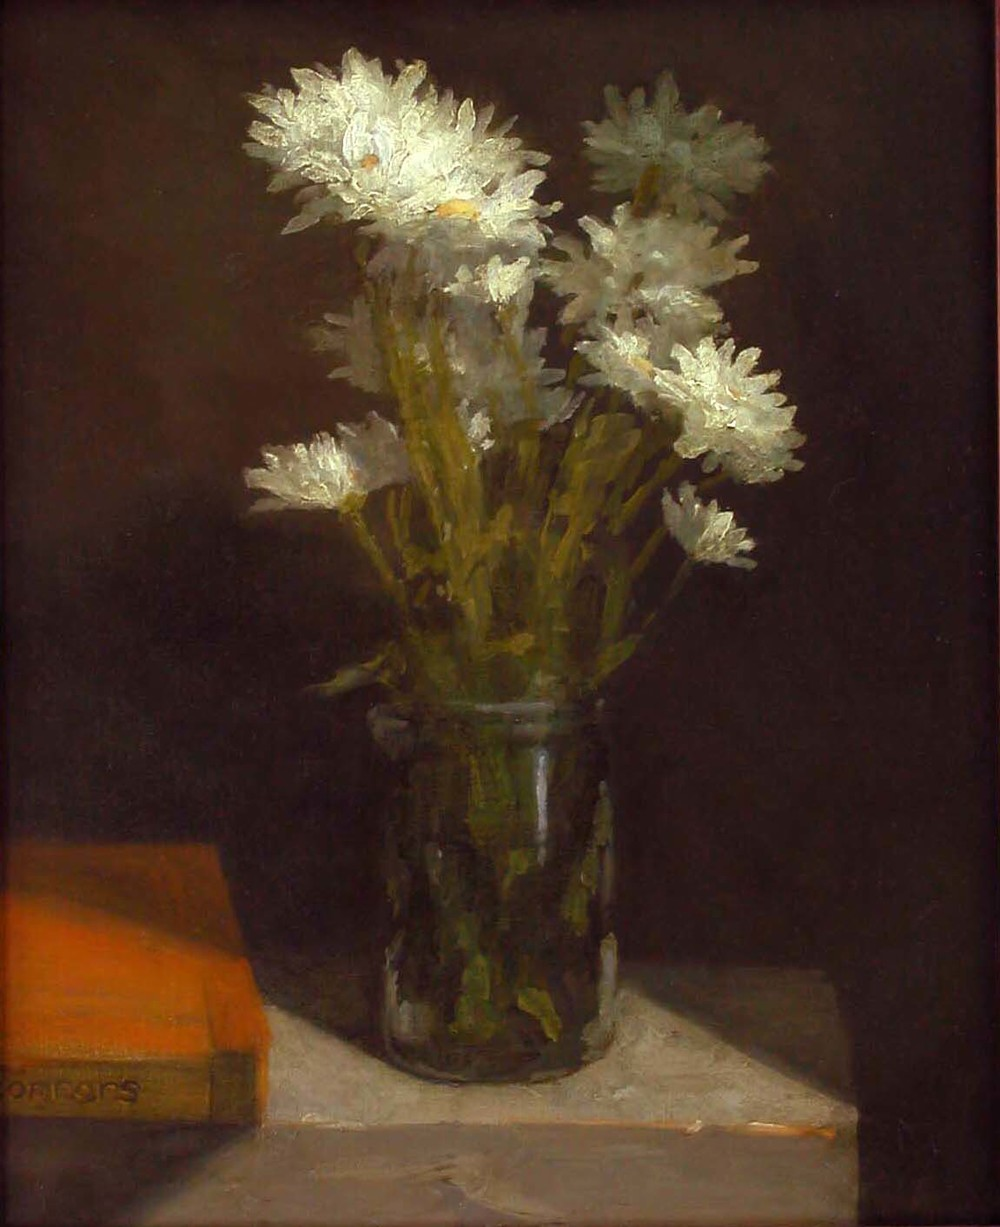 Daisies, 12 x 15 inches, oil on linen